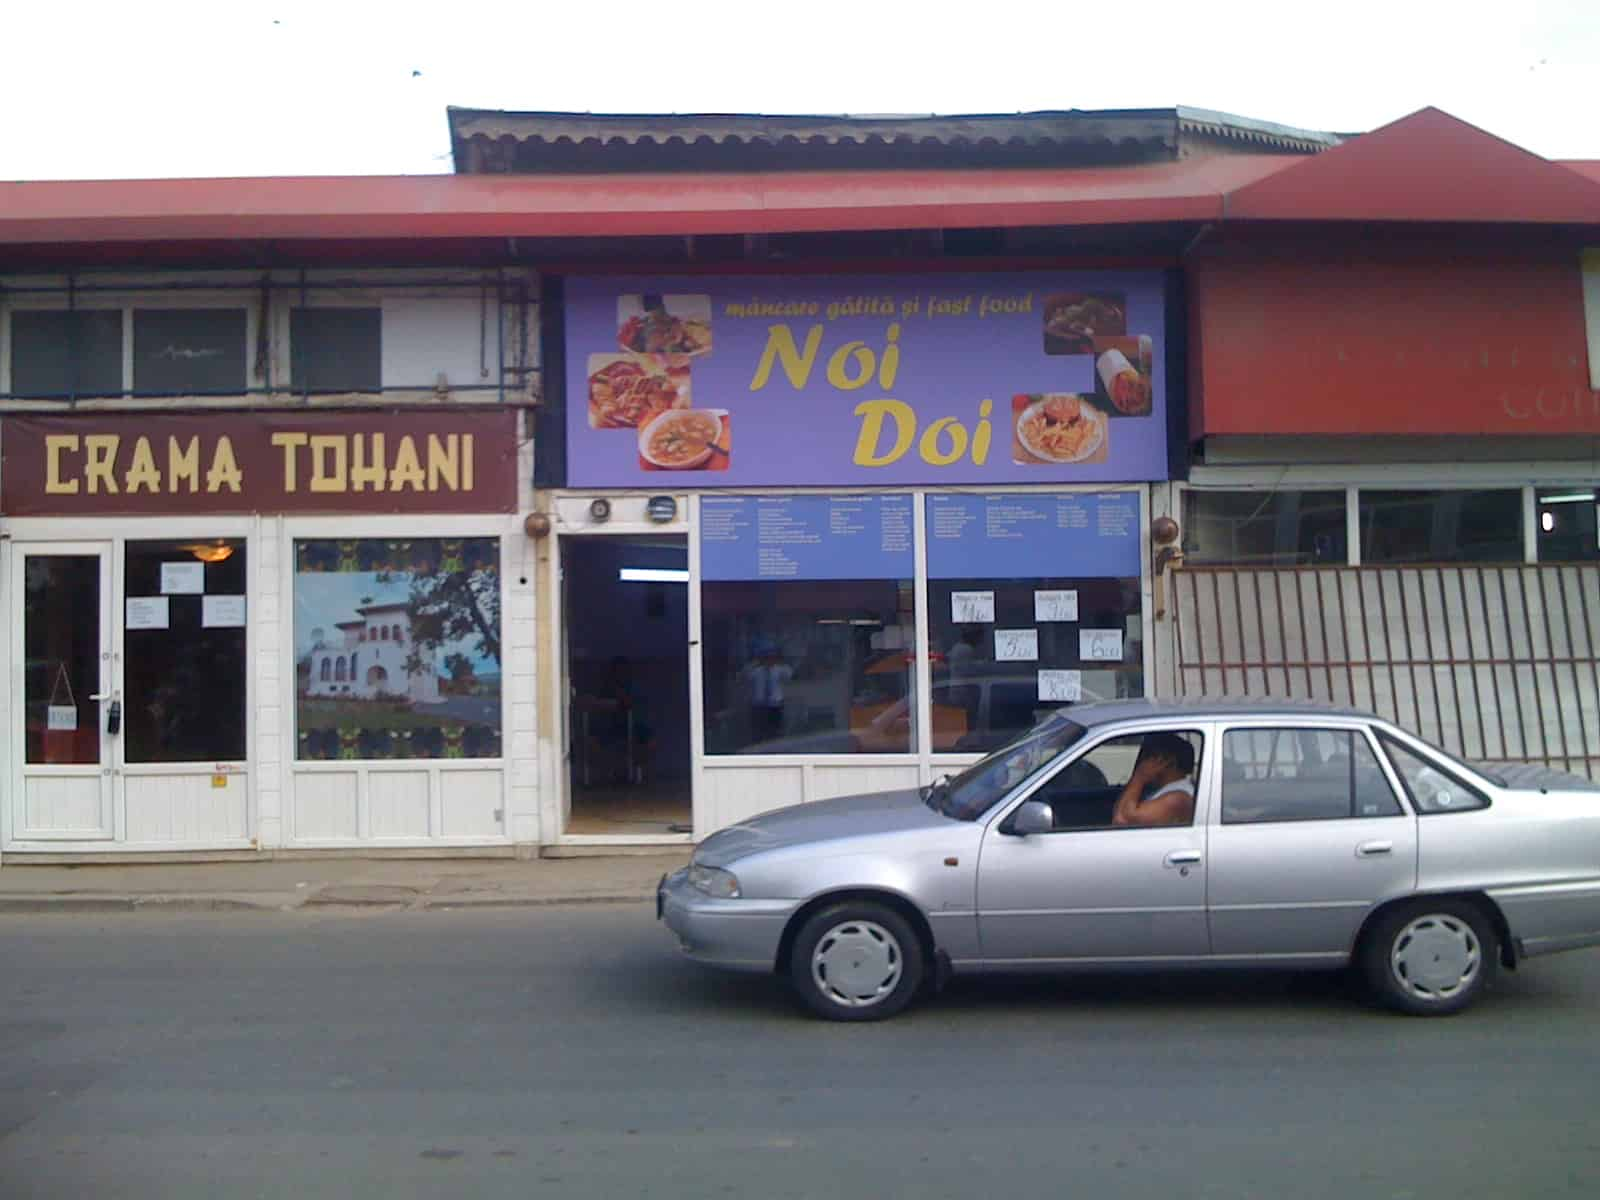 Panou Noi Doi